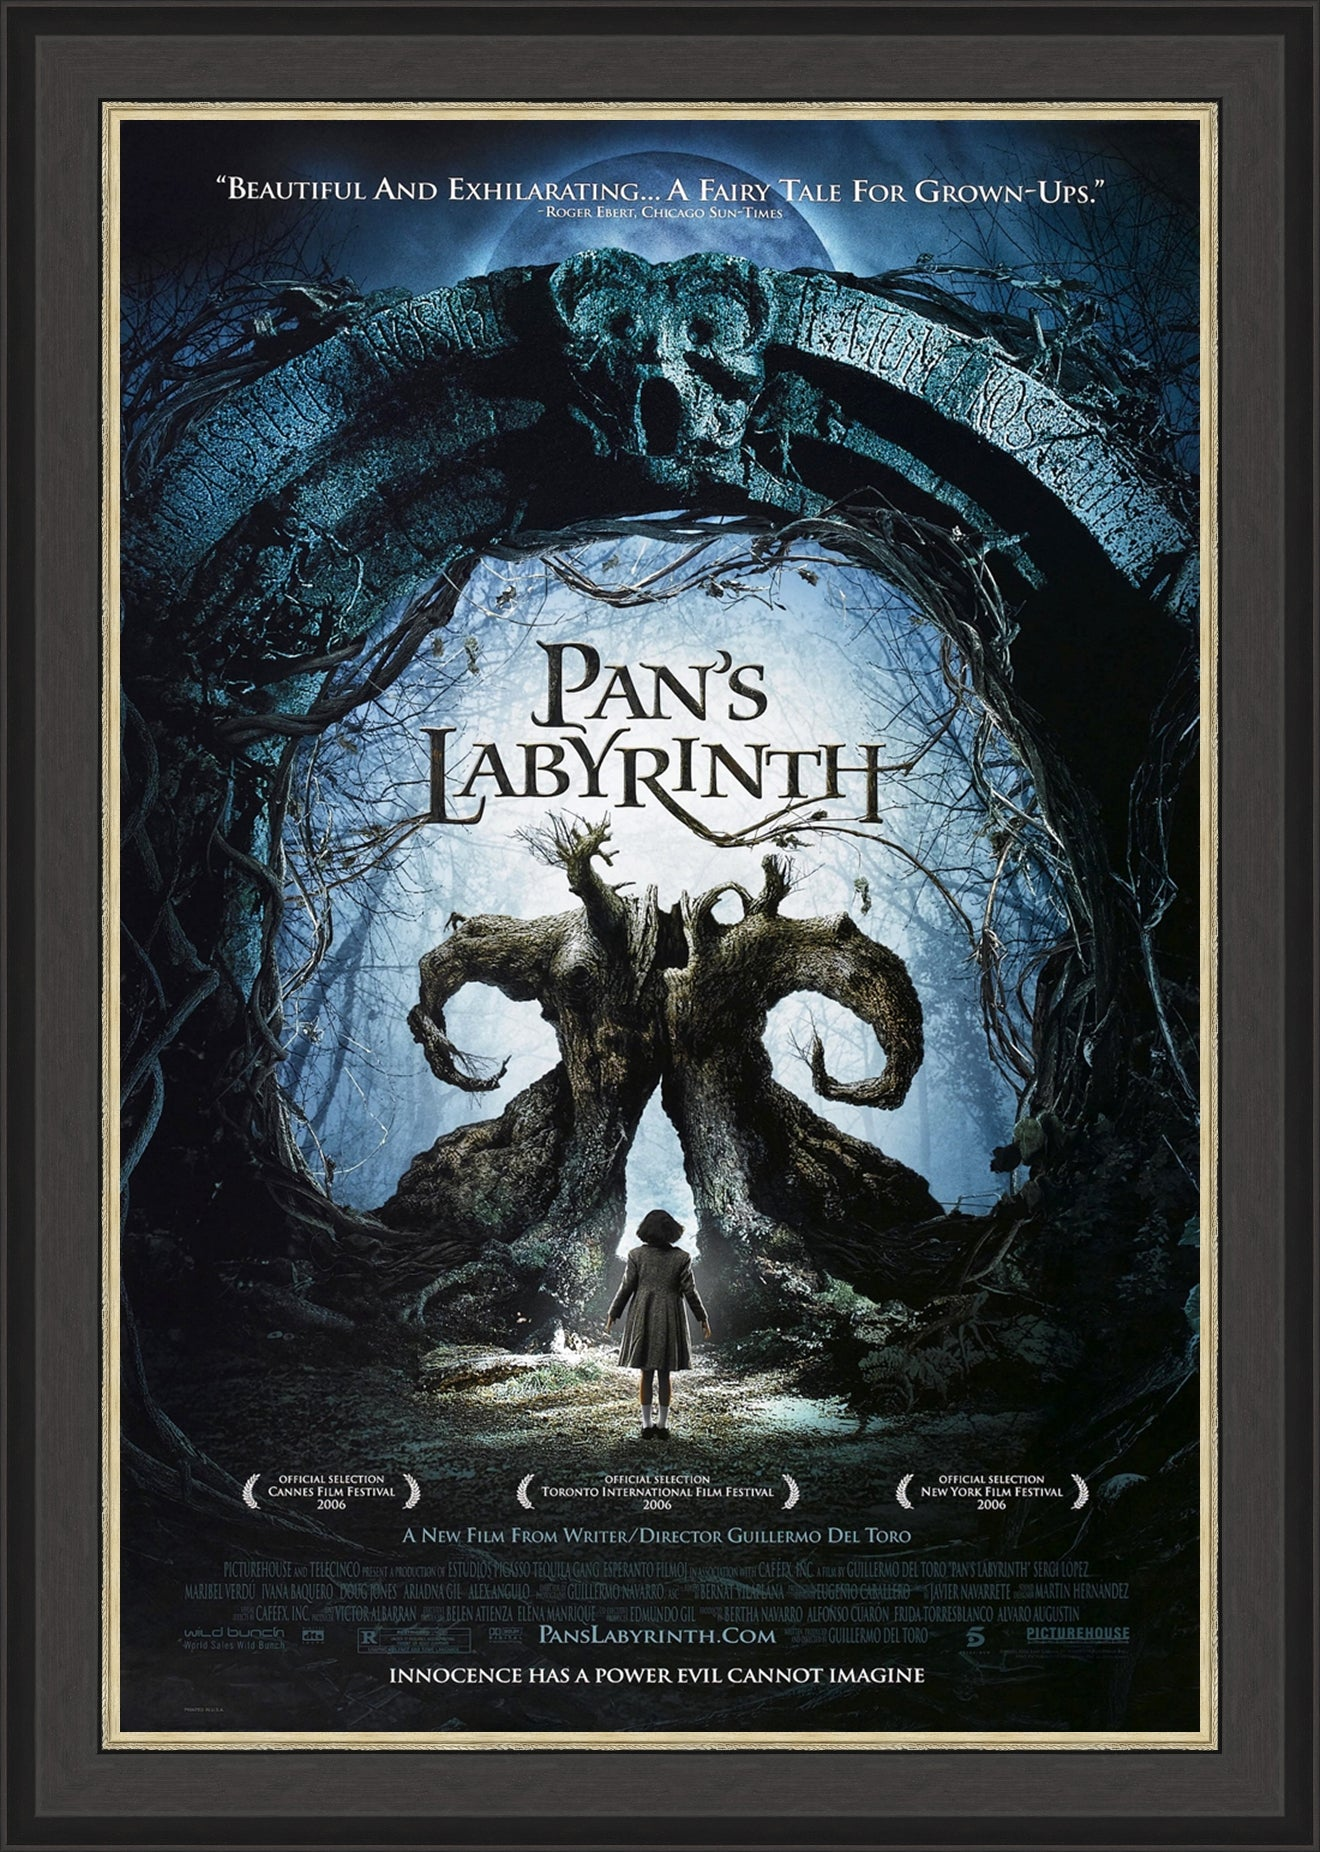 An original movie poster for the film Pan's Labyrinth